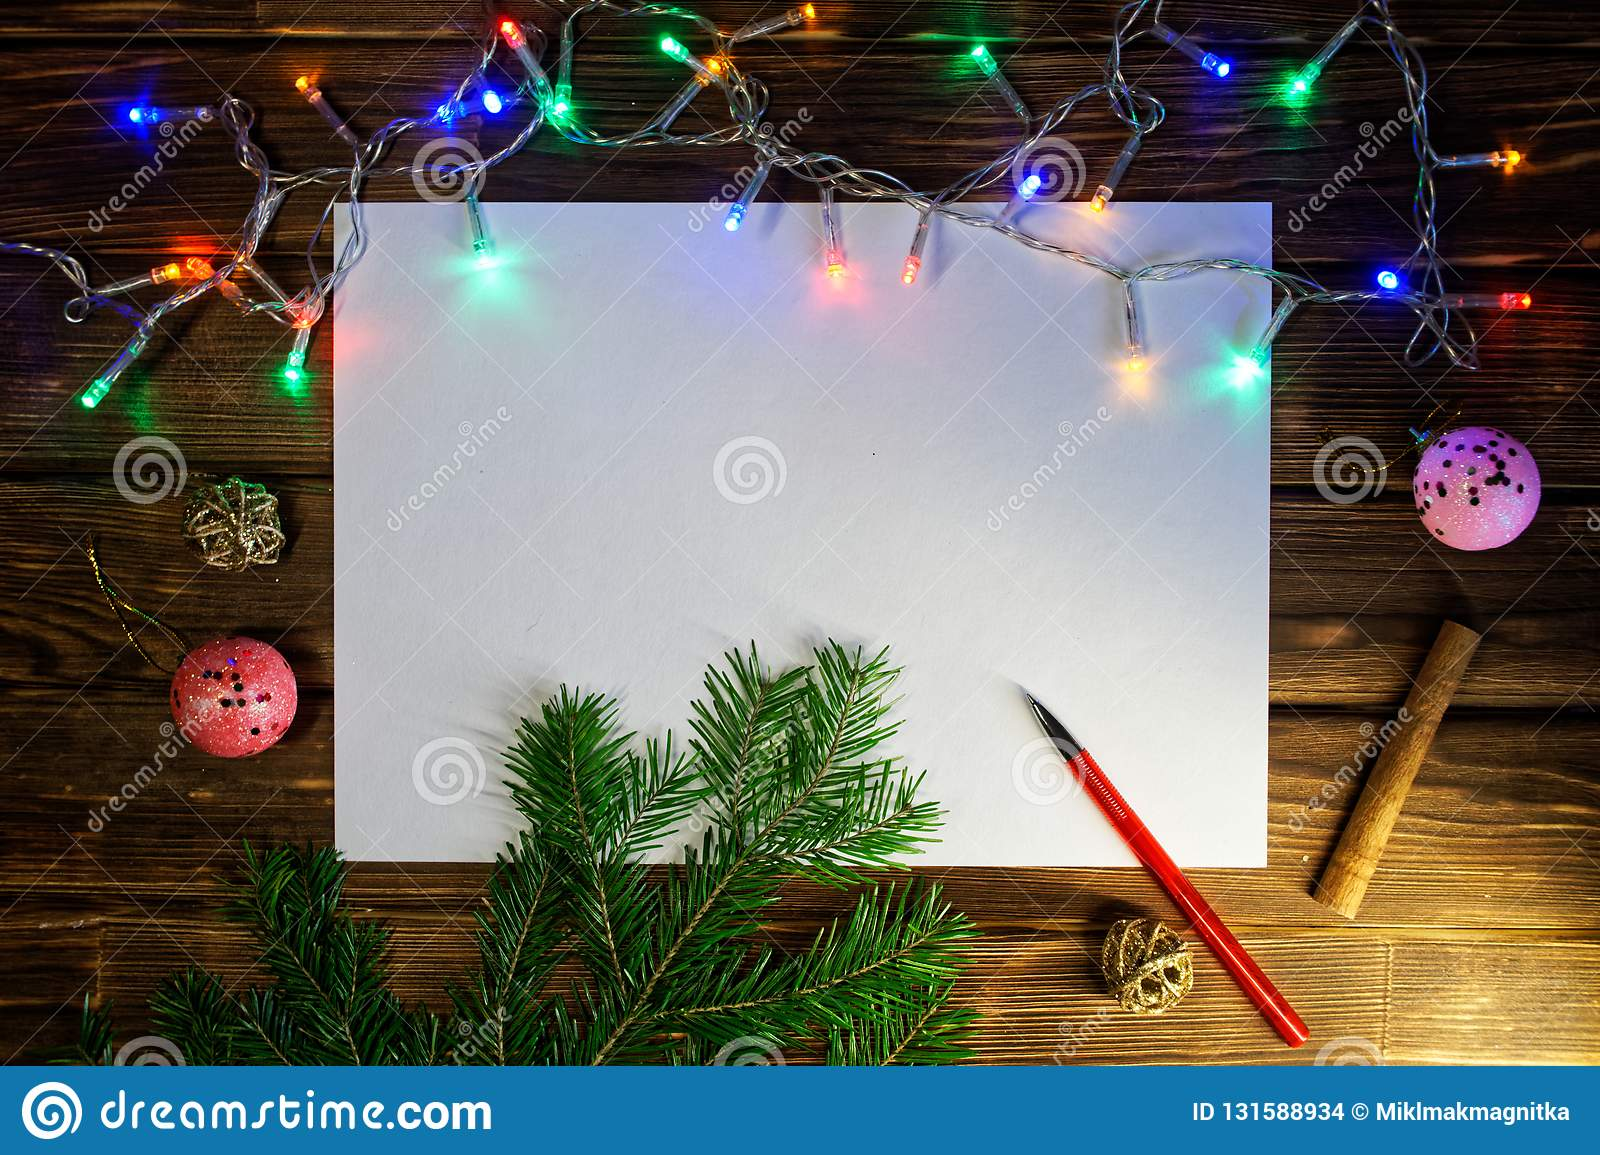 Blank sheet for writing New Year`s wishes, congratulations and gifts. Happy New Year and Merry Christmas